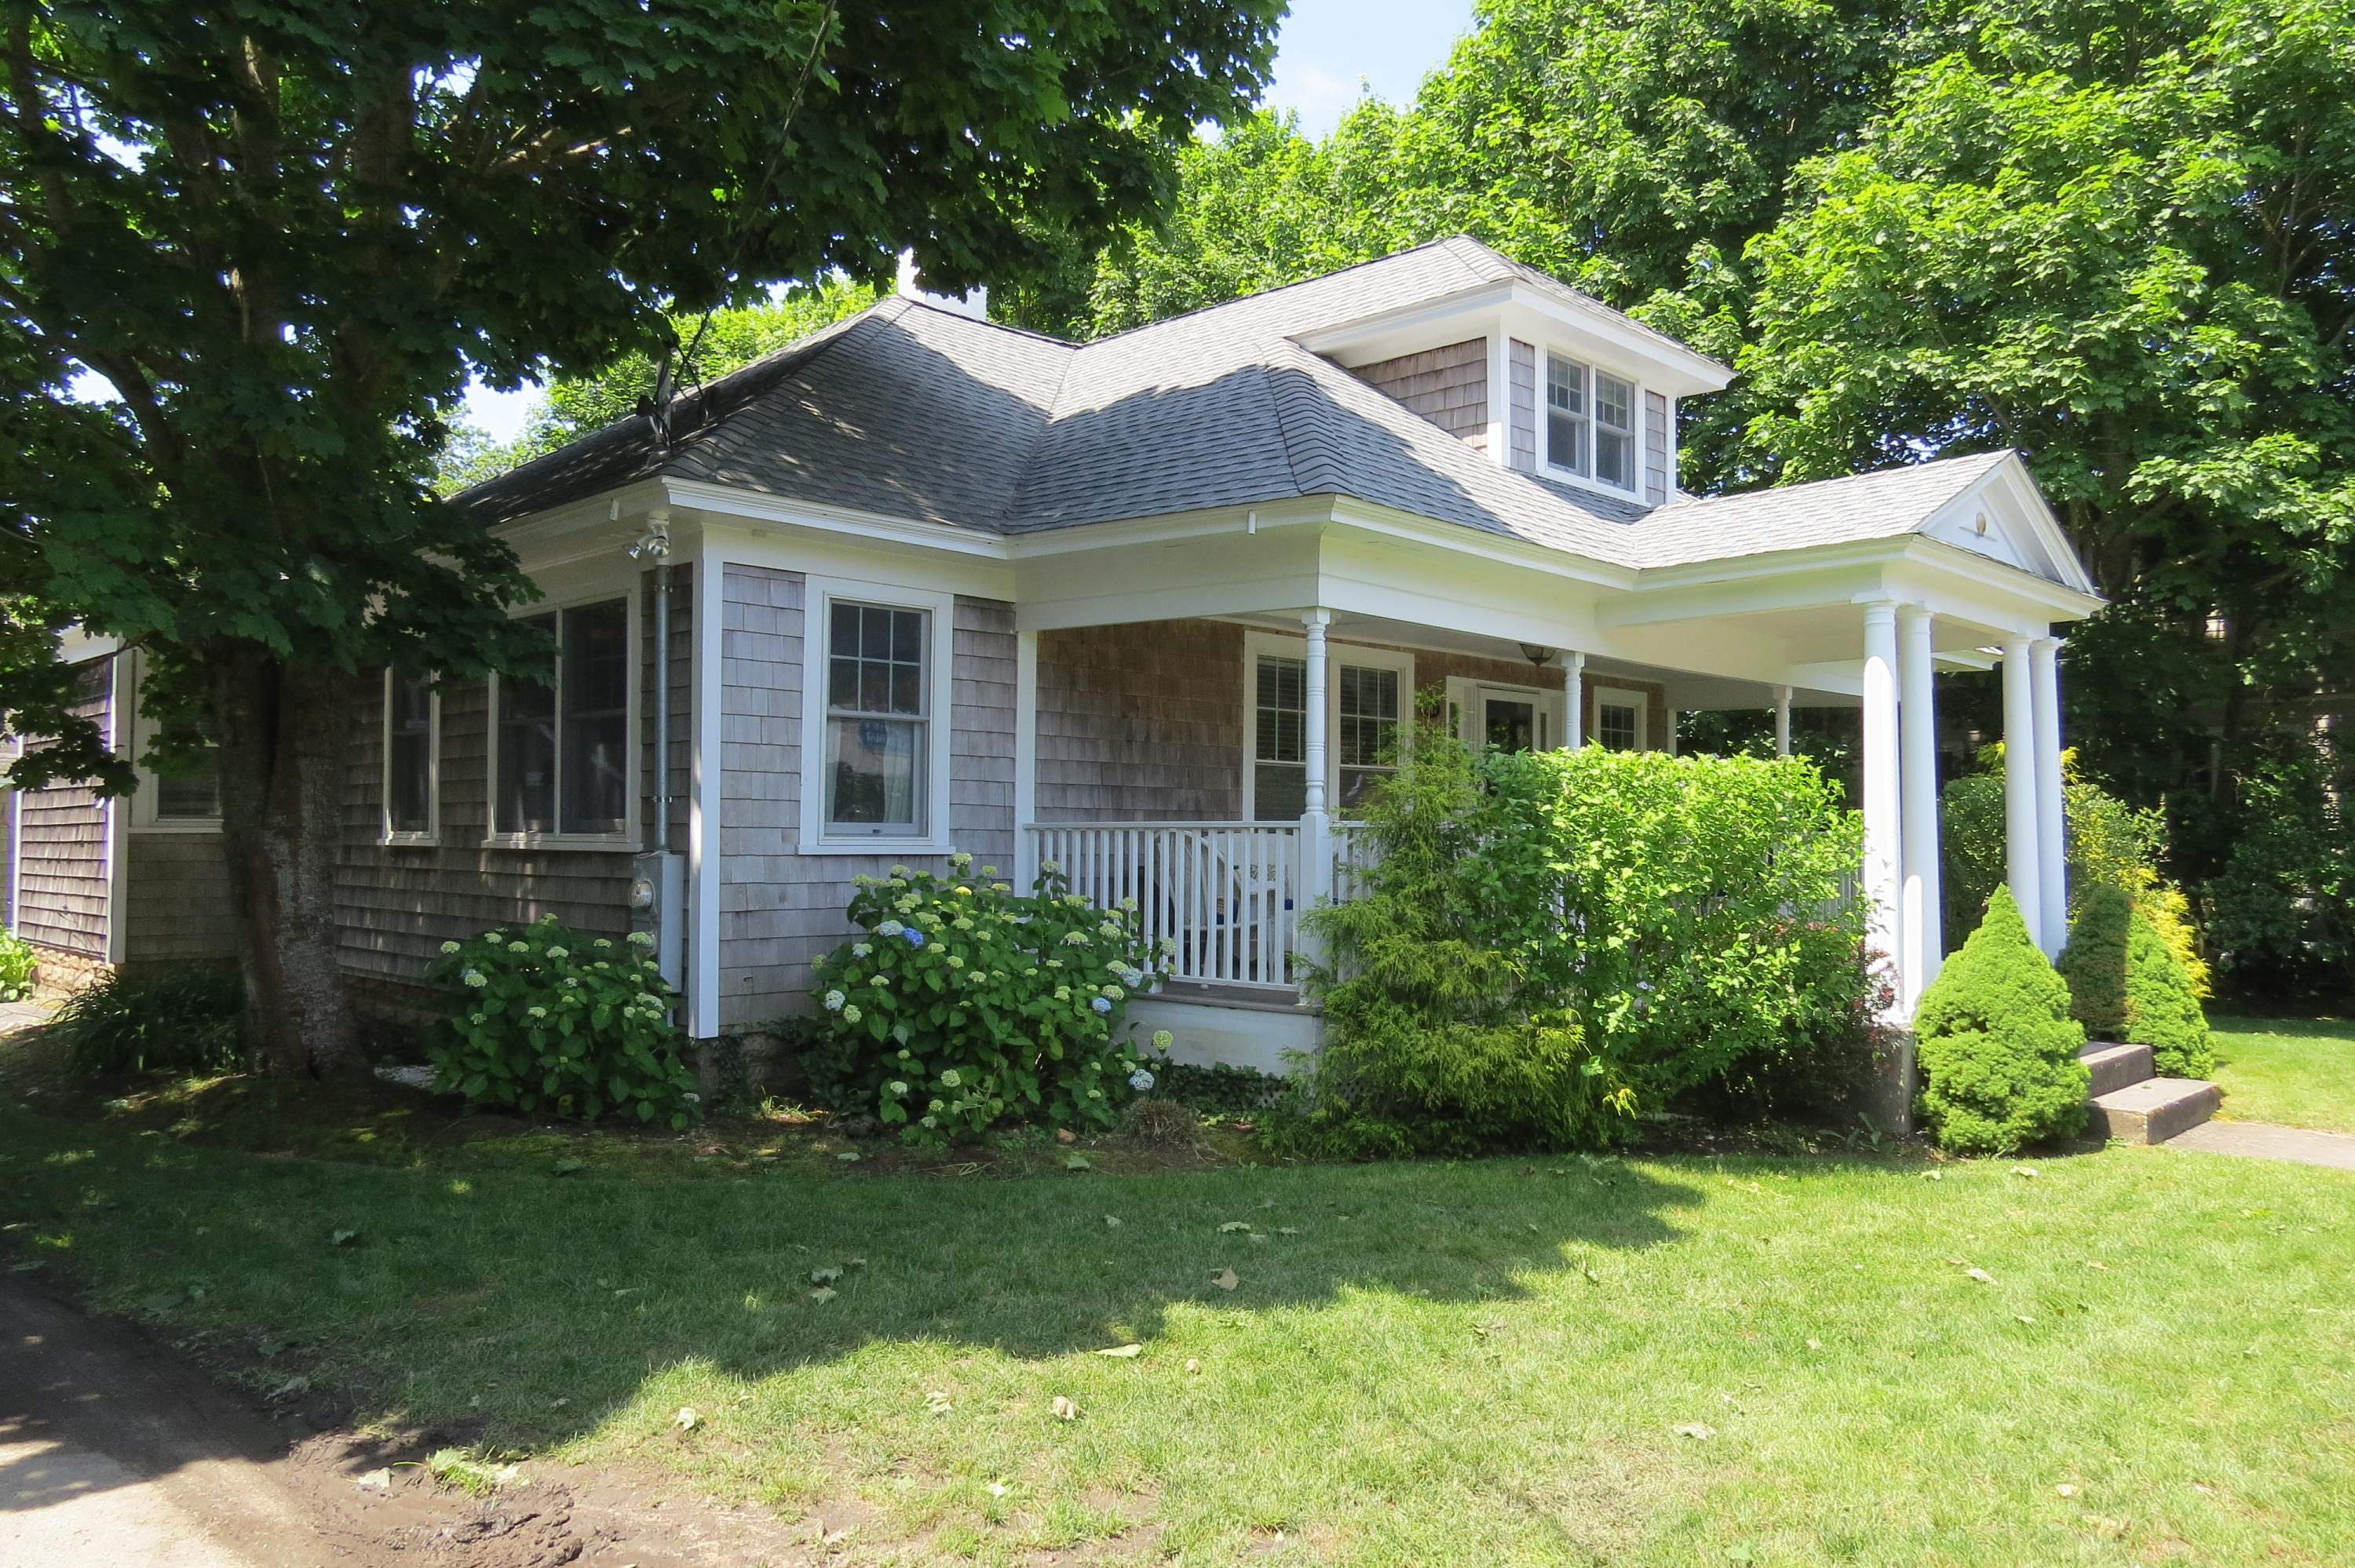 Chatham Real Estate - Cape Cod Antique , 747 Main Street, Chatham MA, 02633   Listed at $899,000